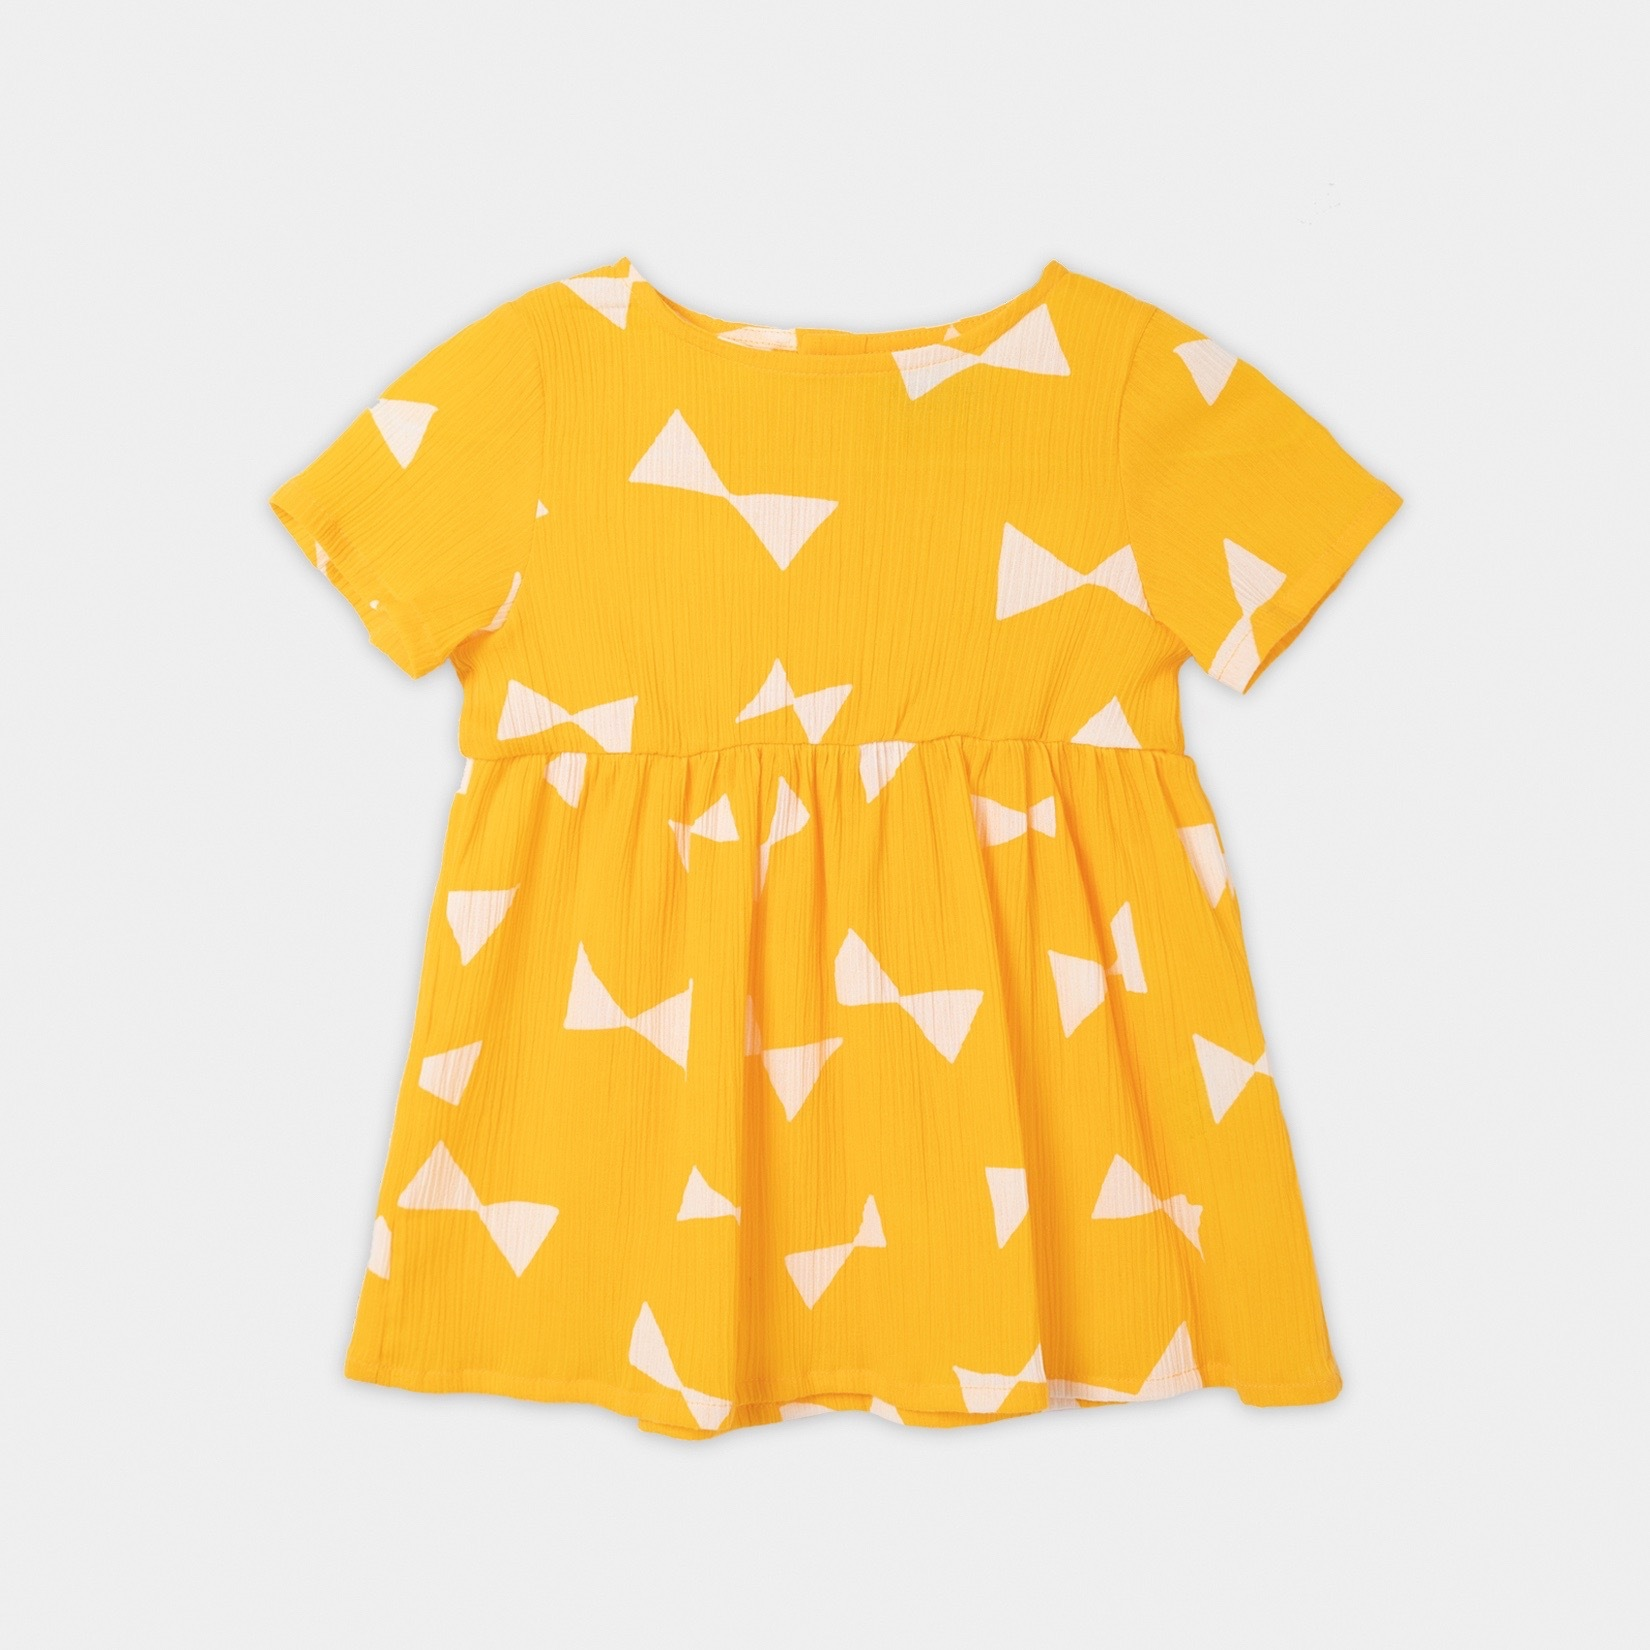 《BOBO CHOSES 2020SS》All Over Bow Dress / 12-36M